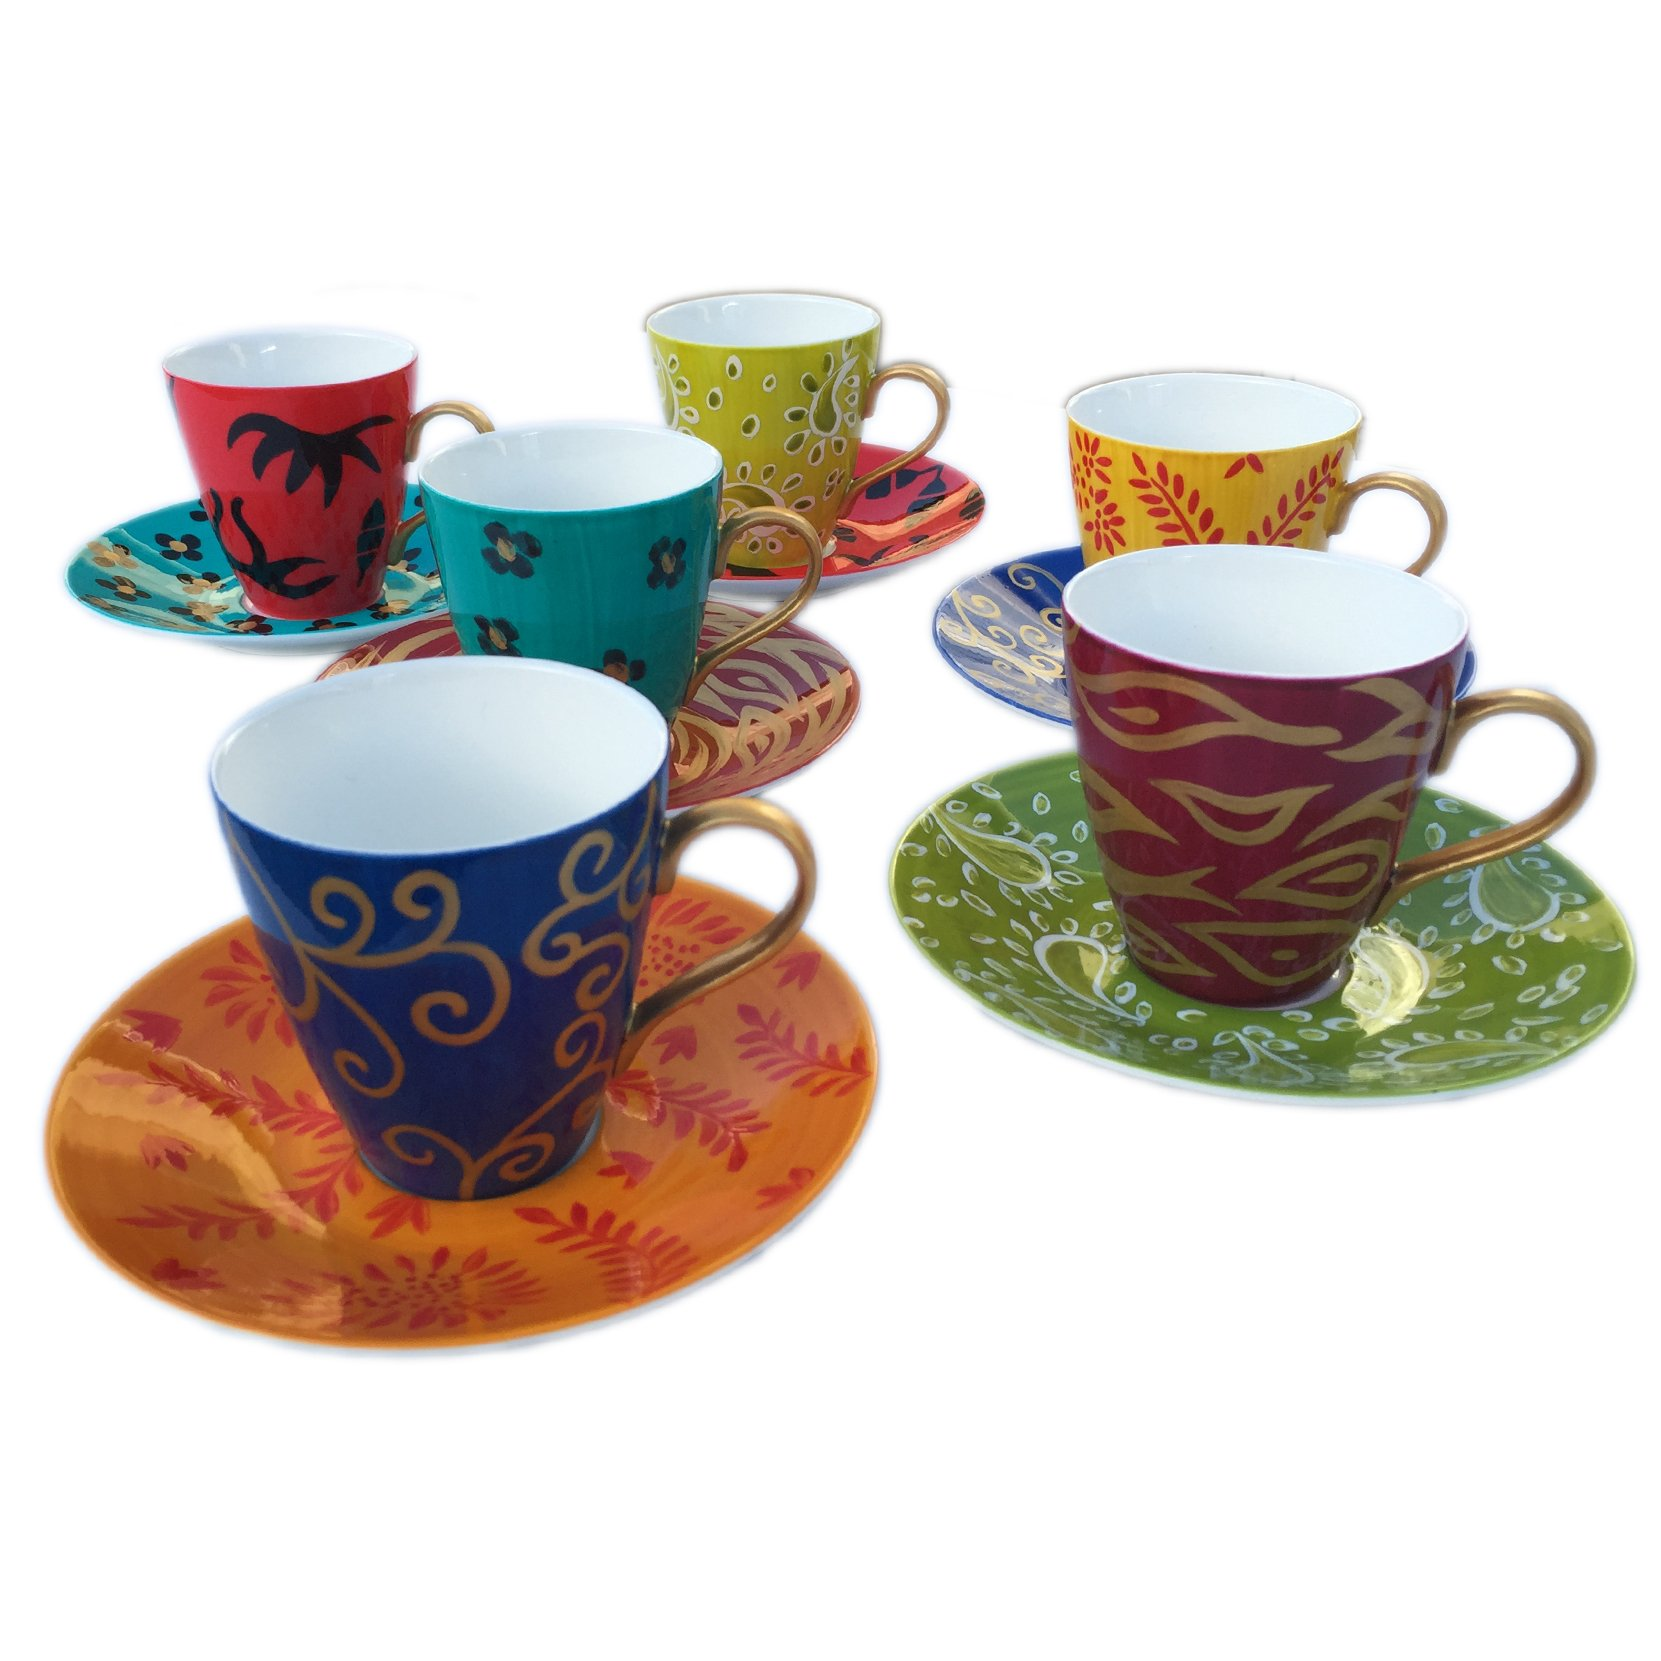 Caroline Hely Hutchinson for CHH Design Set Of Tea Or Coffee Cups And Saucers Painted In 'Carnival' Design by Caroline Hely Hutchinson for CHH Design